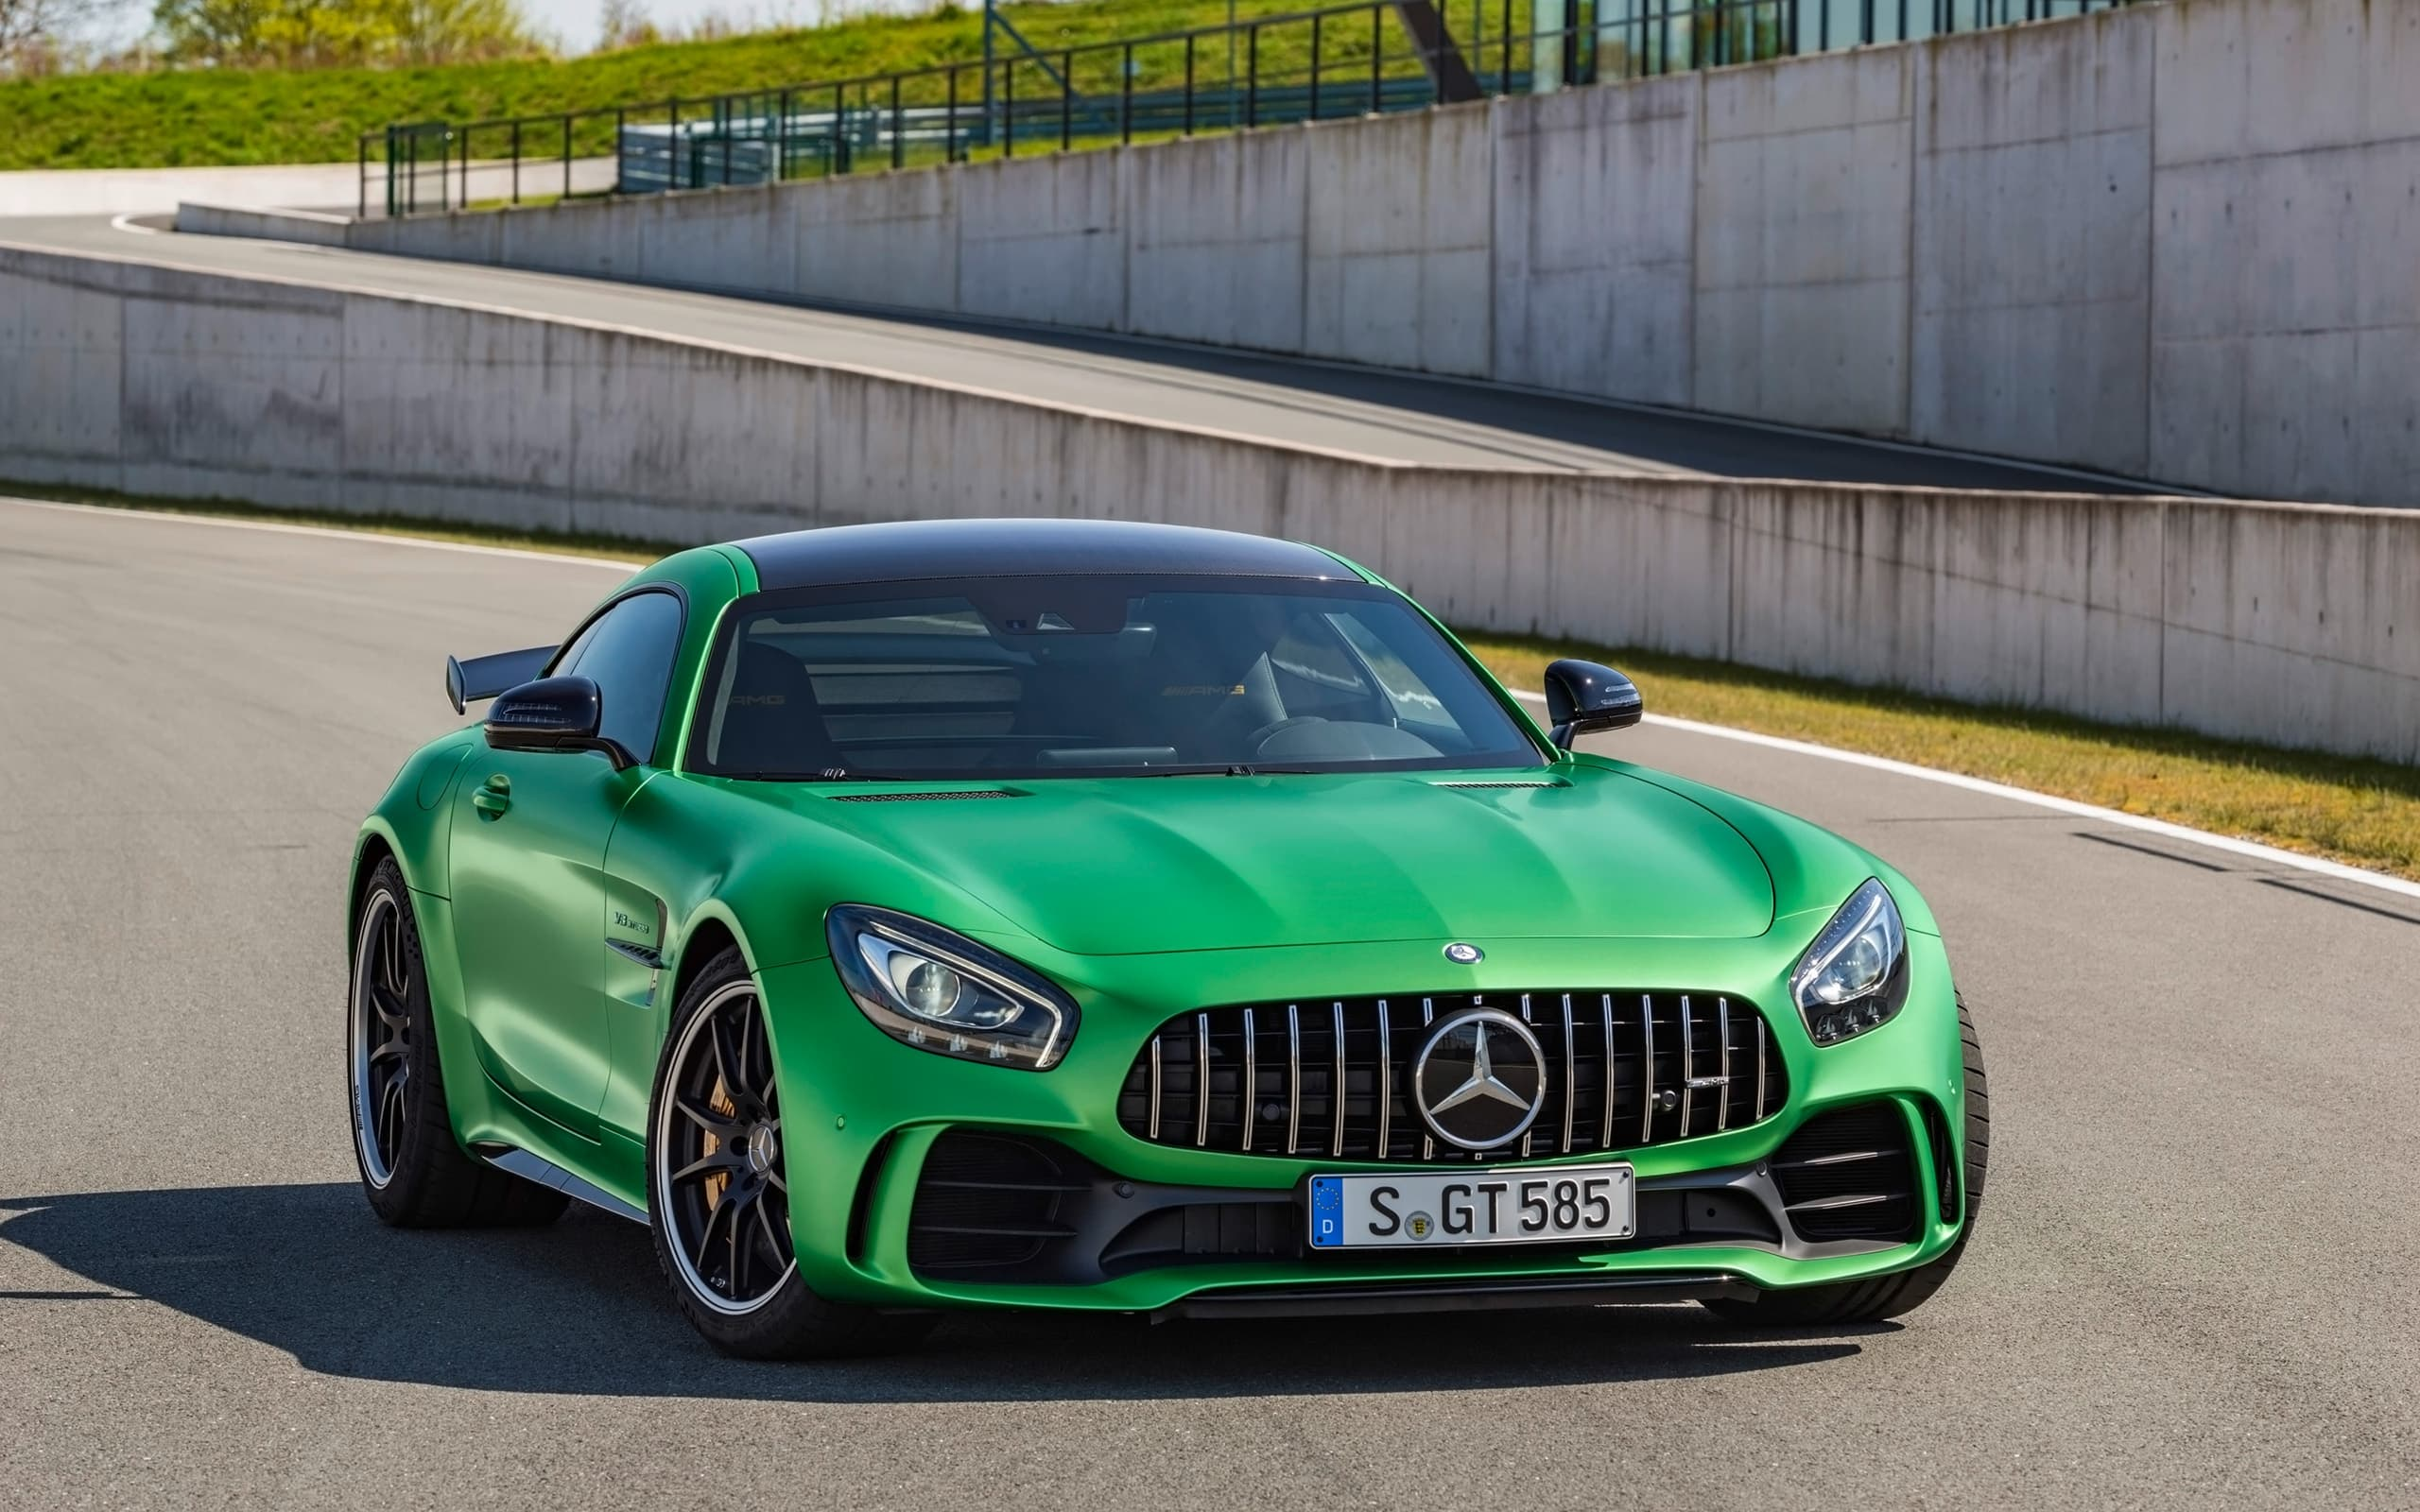 mercedes amg gt r 2017 wallpapers hd high quality and resolution. Black Bedroom Furniture Sets. Home Design Ideas